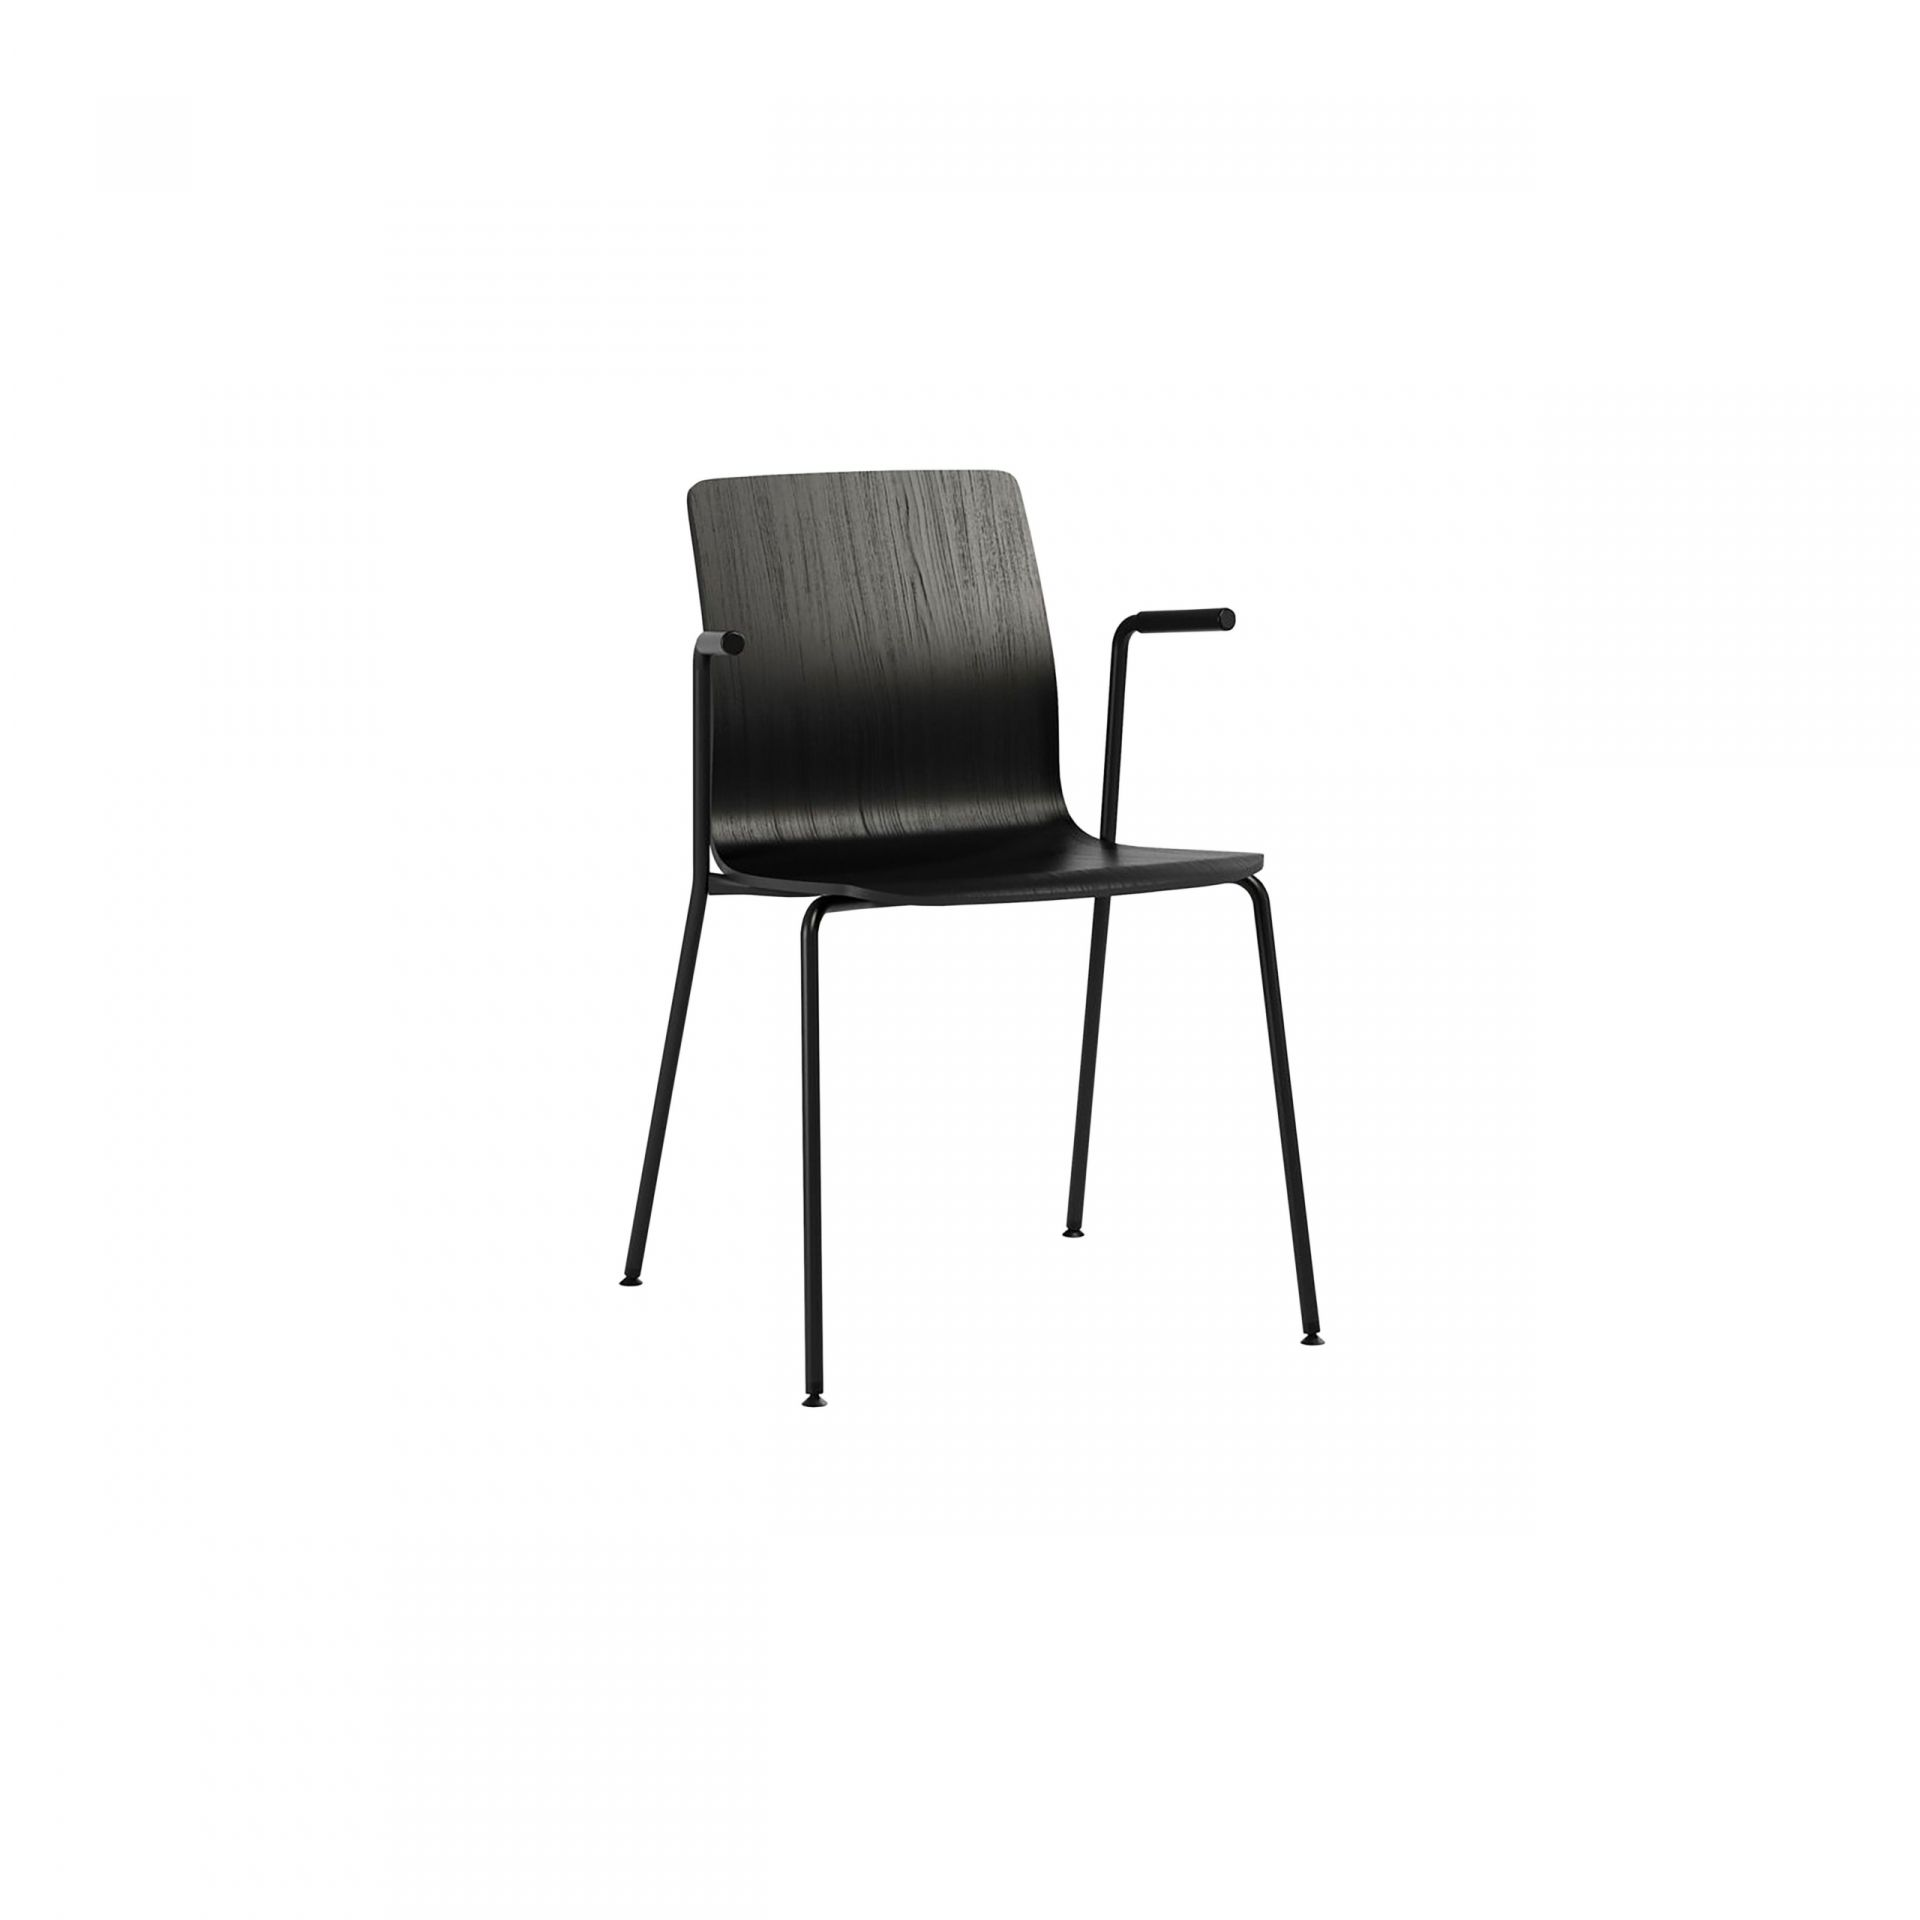 Nova Chair with metal legs product image 4